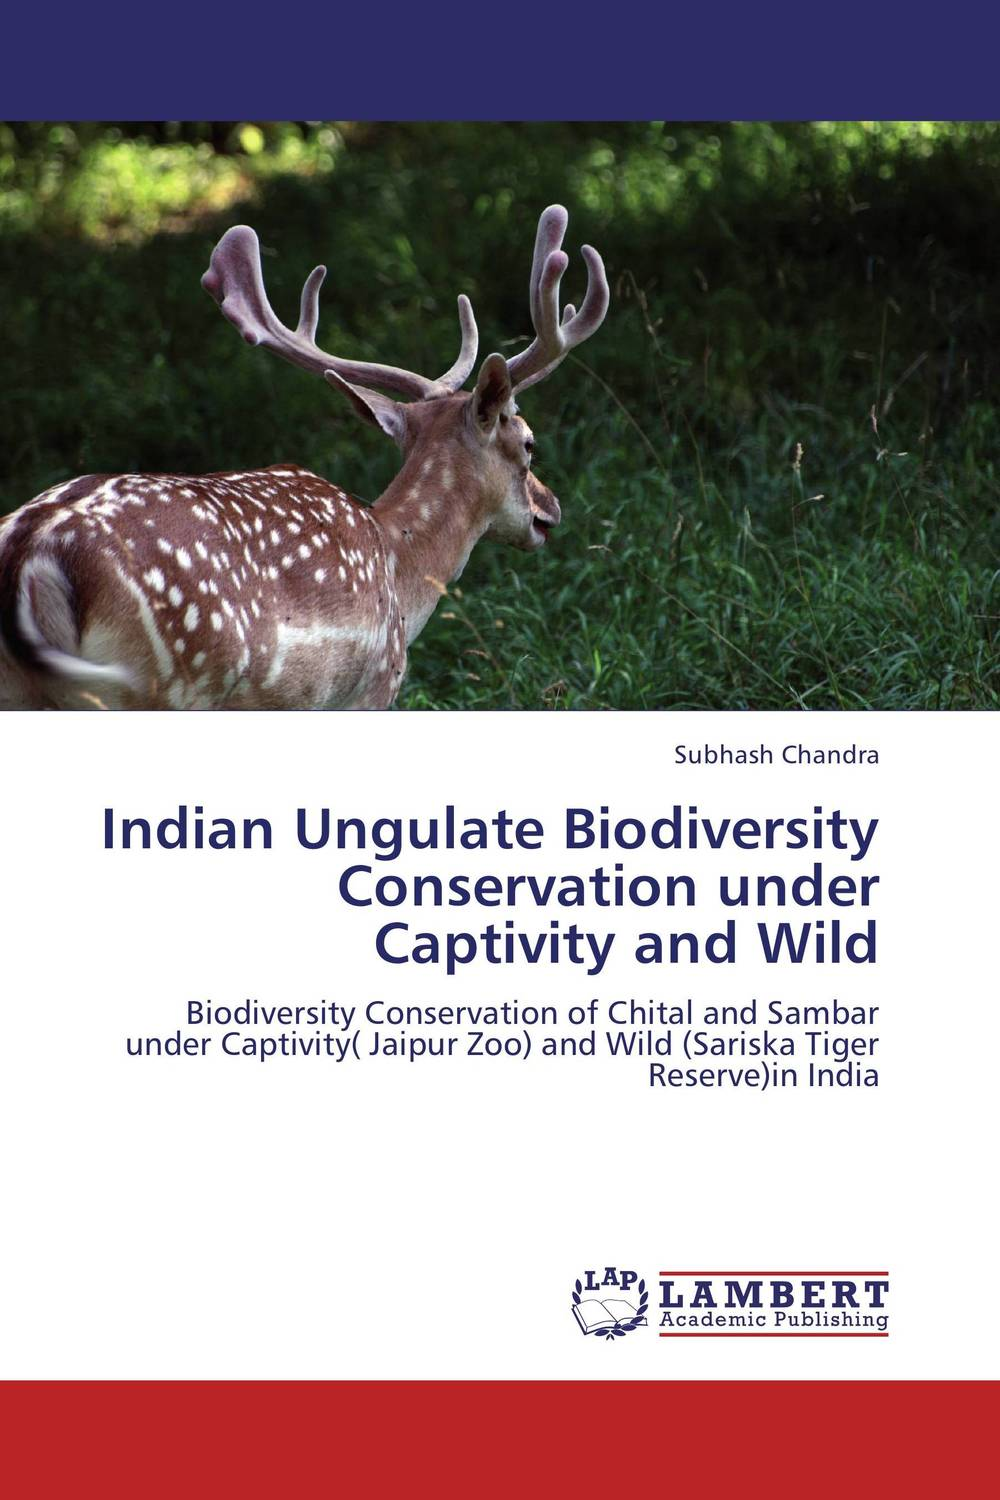 Indian Ungulate Biodiversity Conservation under Captivity and Wild the role of heritage conservation districts